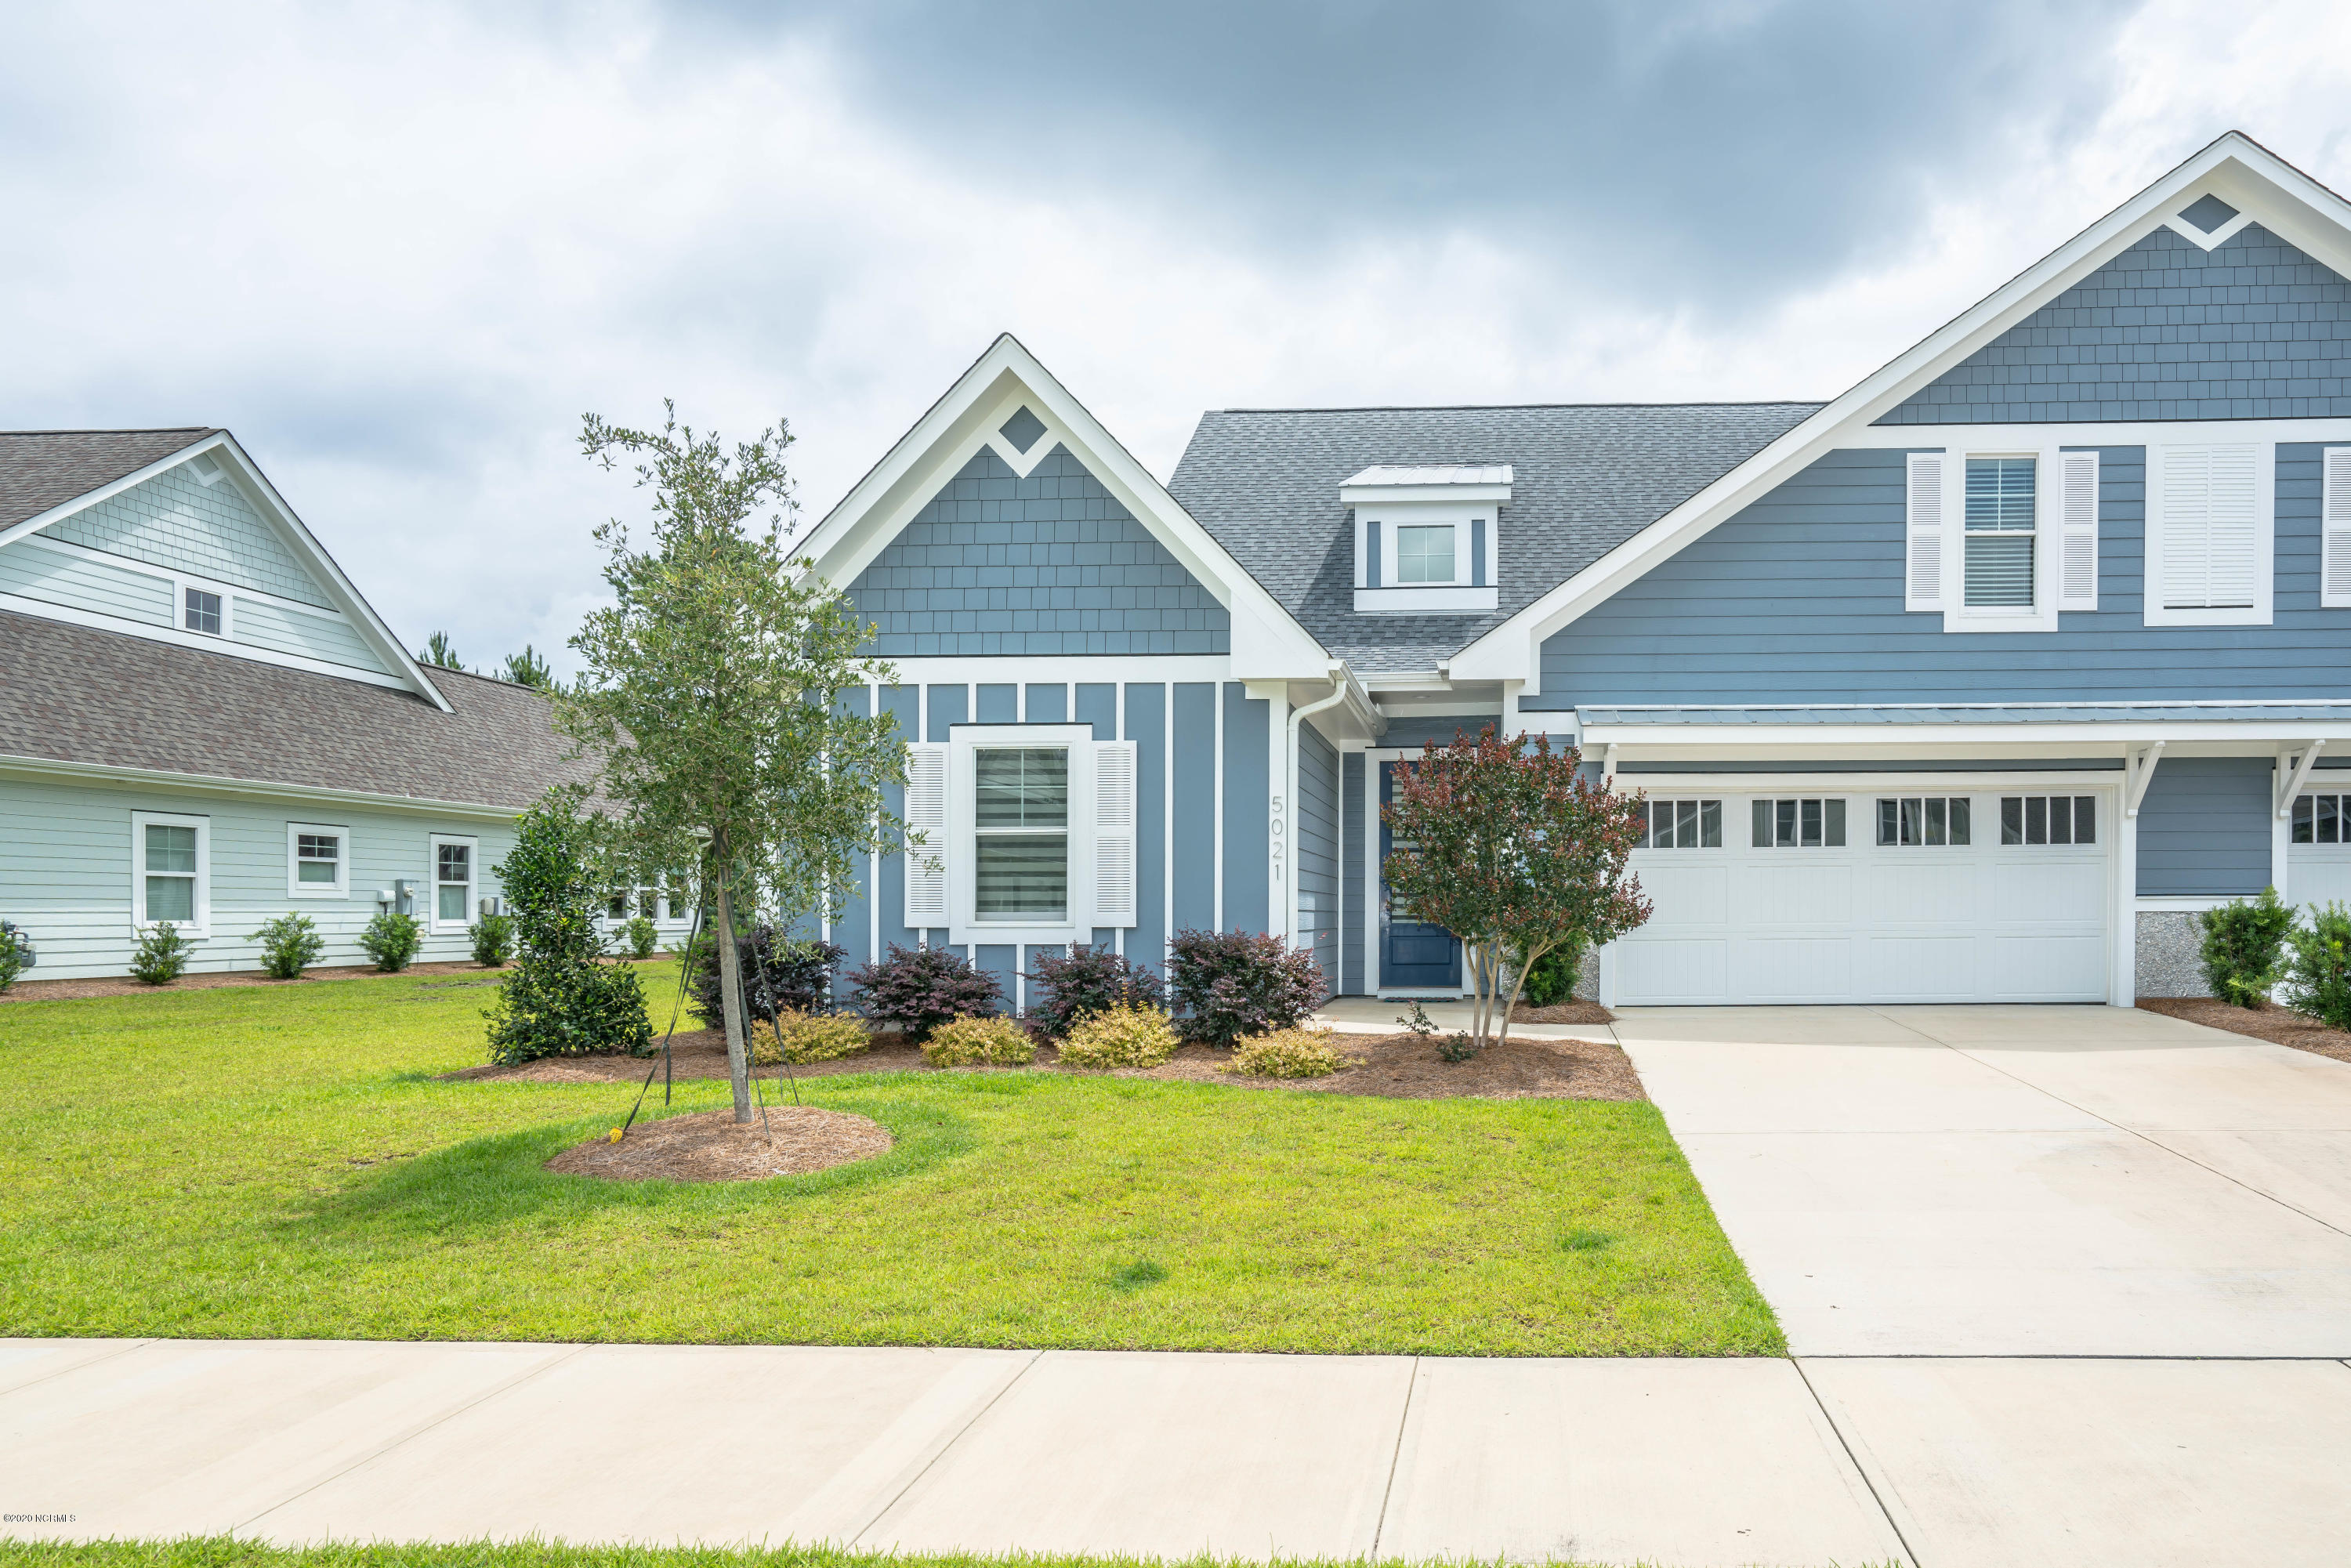 5021 Killogren Way Leland, NC 28451